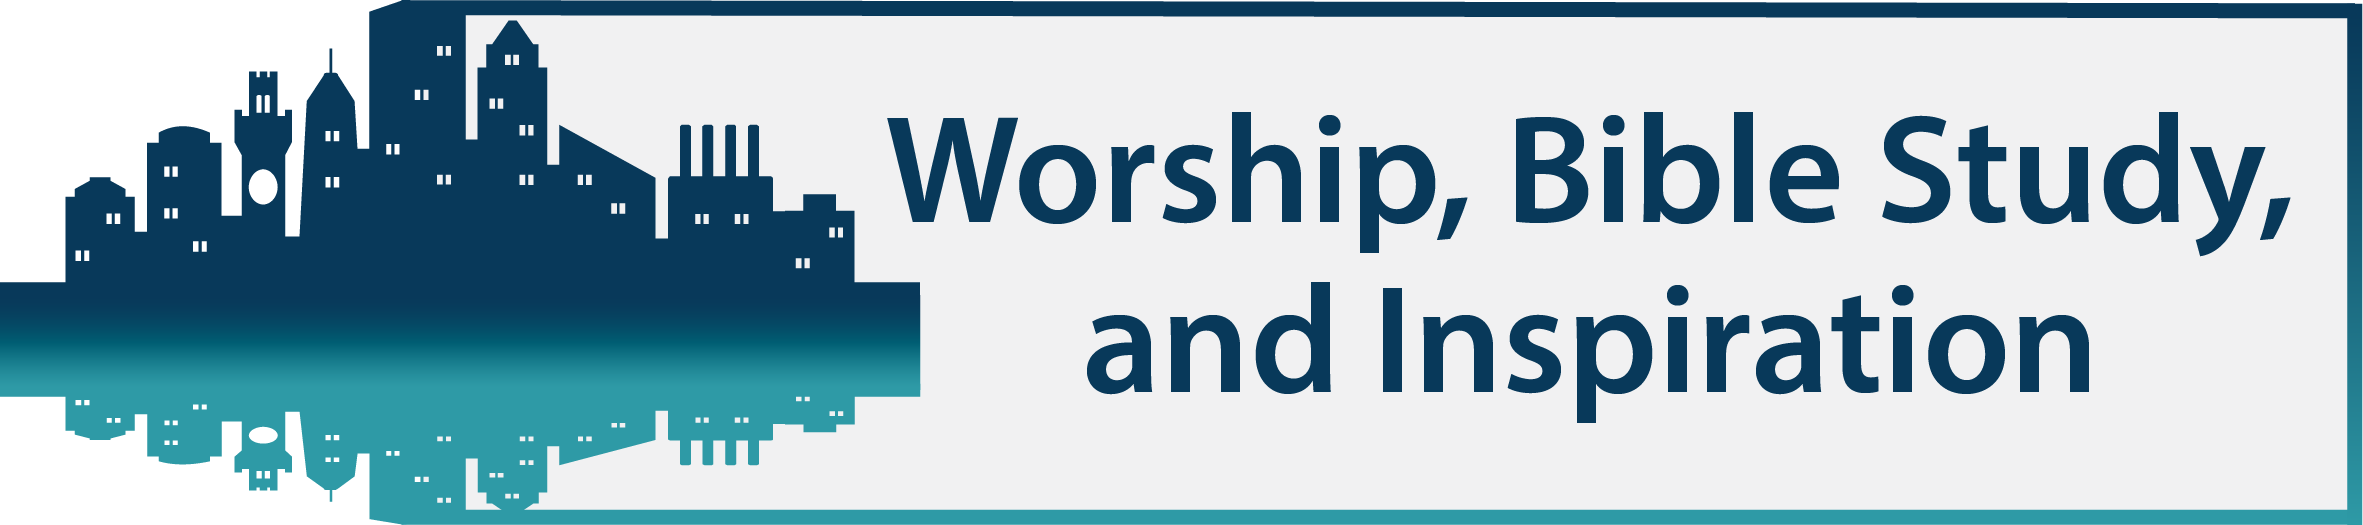 Big Tent Banner - Worship Bible Study Inspiration